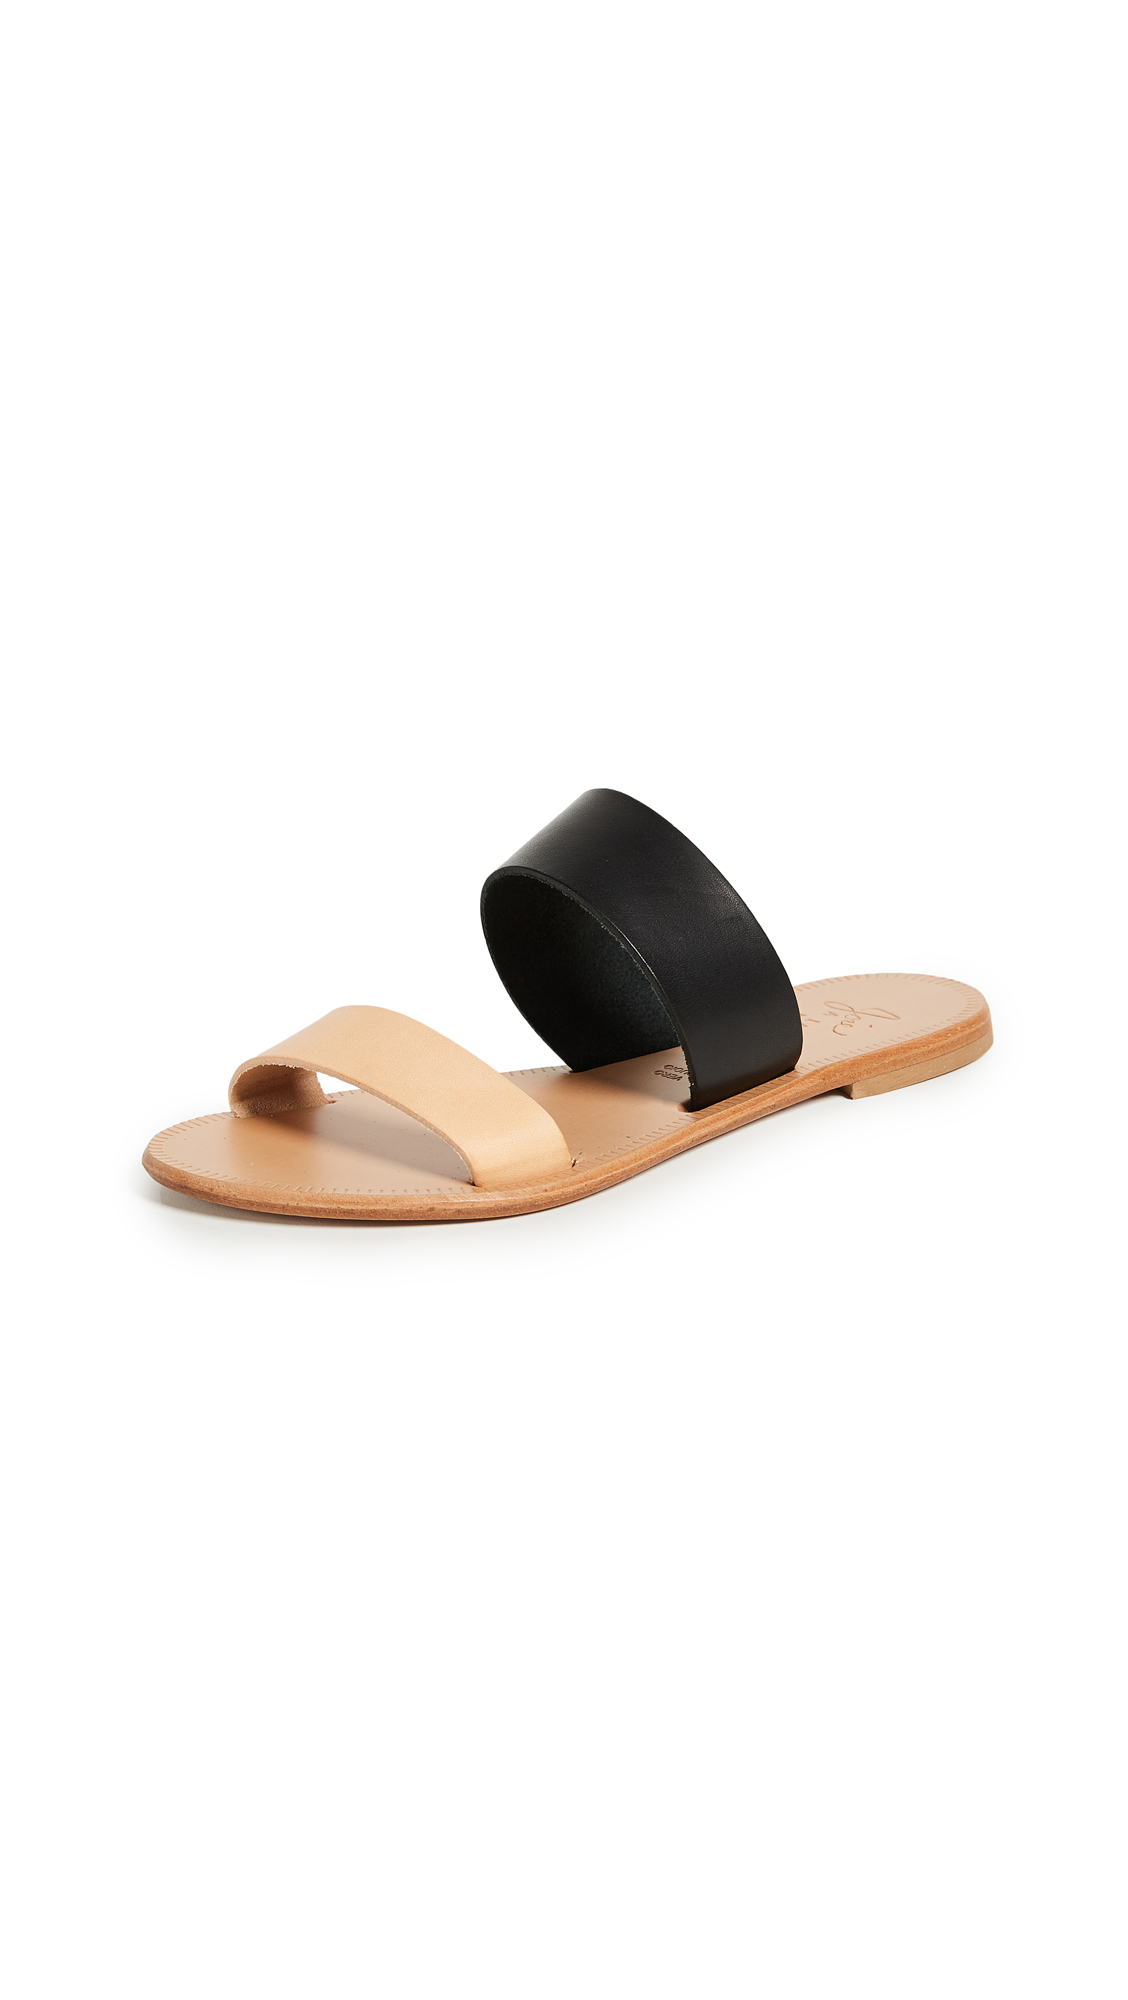 Joie A La Plage Sable Two Band Sandals - Black/Natural